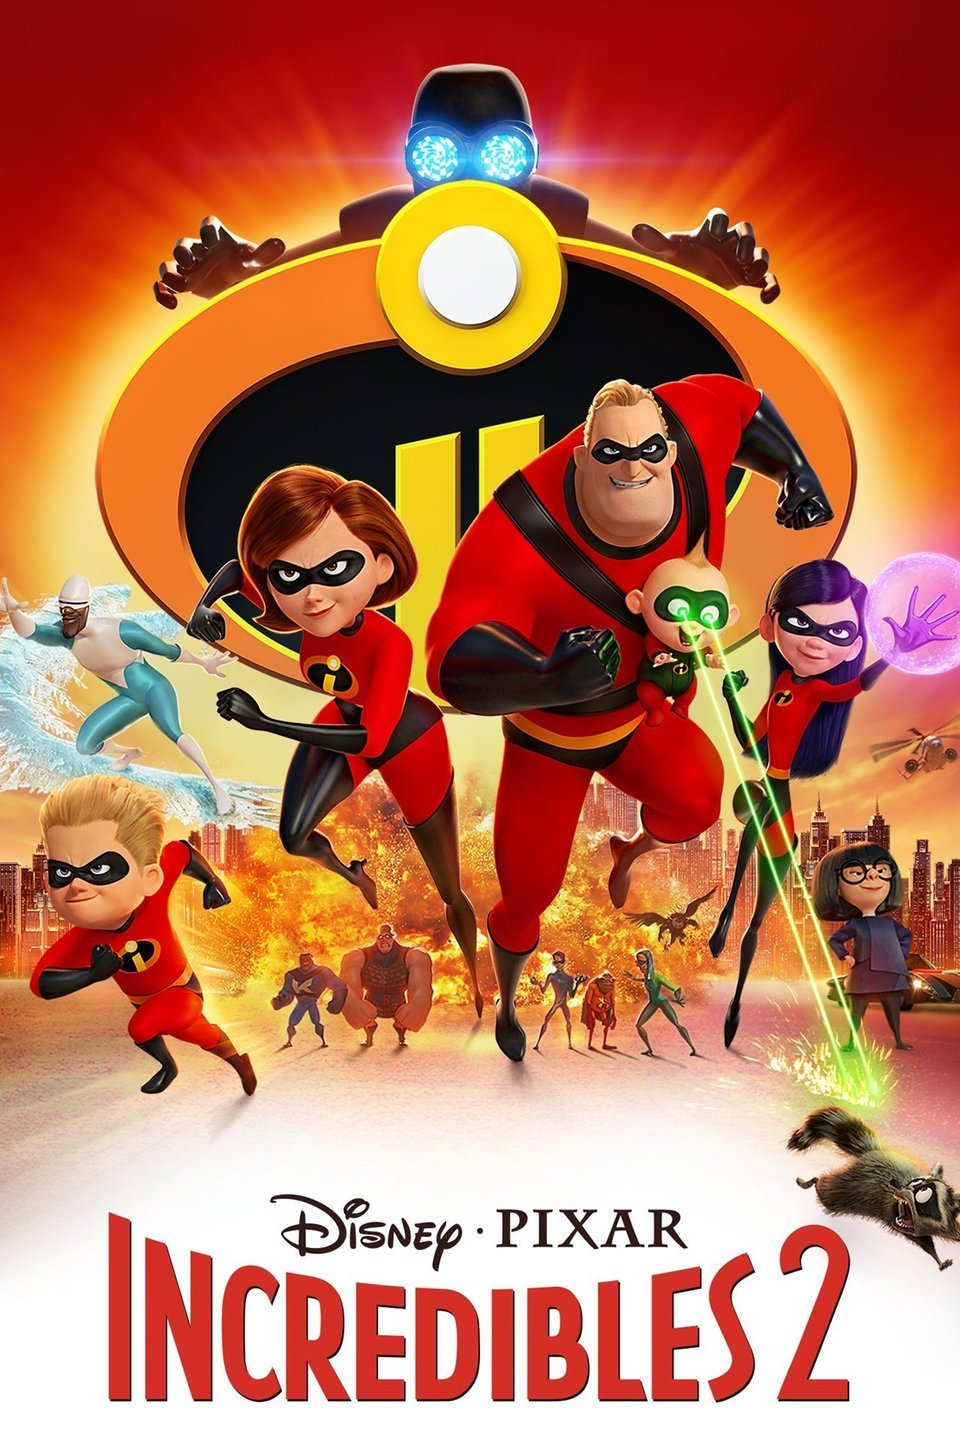 Family Movie: Incredibles 2 (PG)